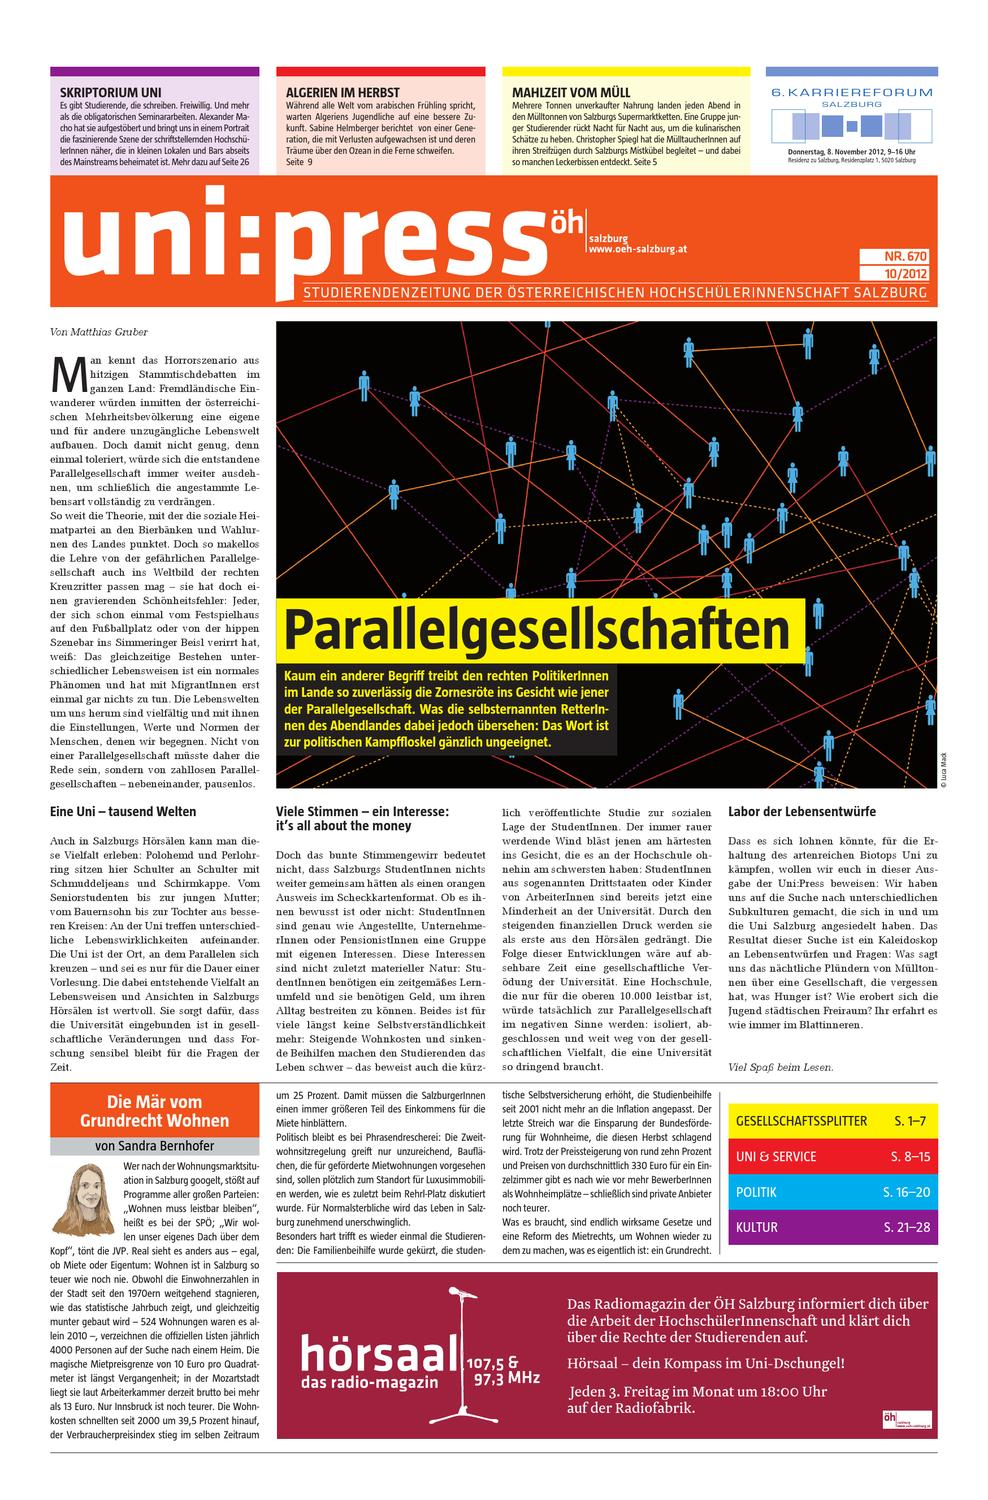 Uni:Press # 670 (Okt  2012) by uni:press (ÖH Salzburg) - issuu